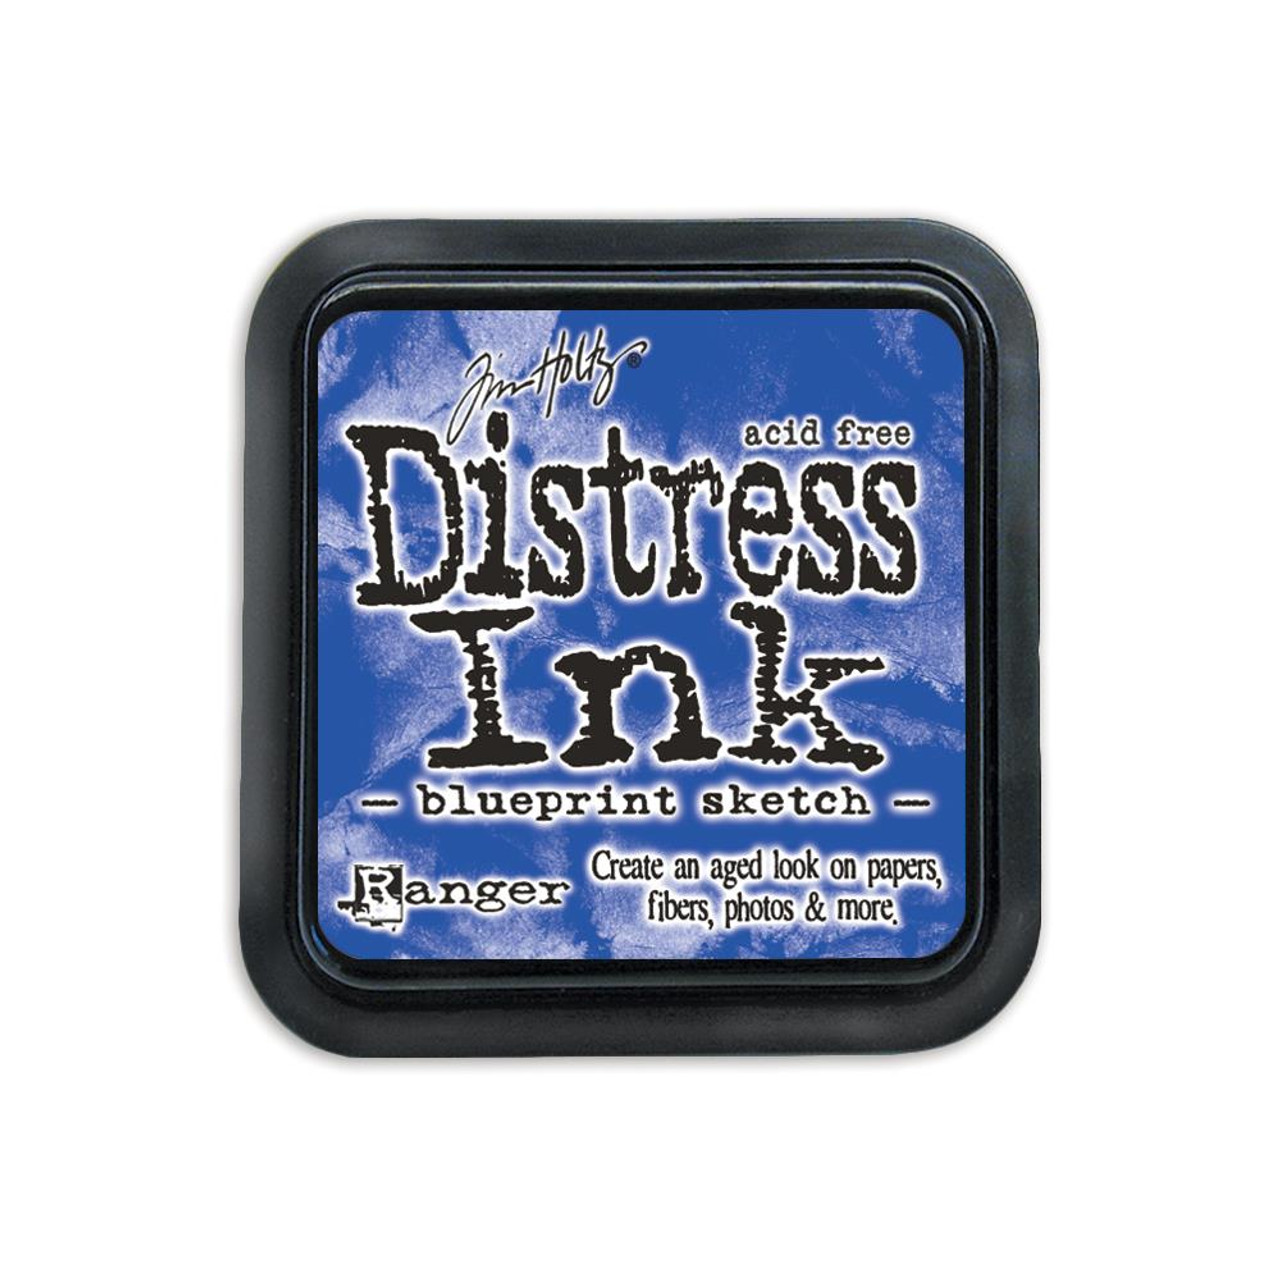 Tim Holtz Distress Ink Stamp Pad – Blueprint Sketch